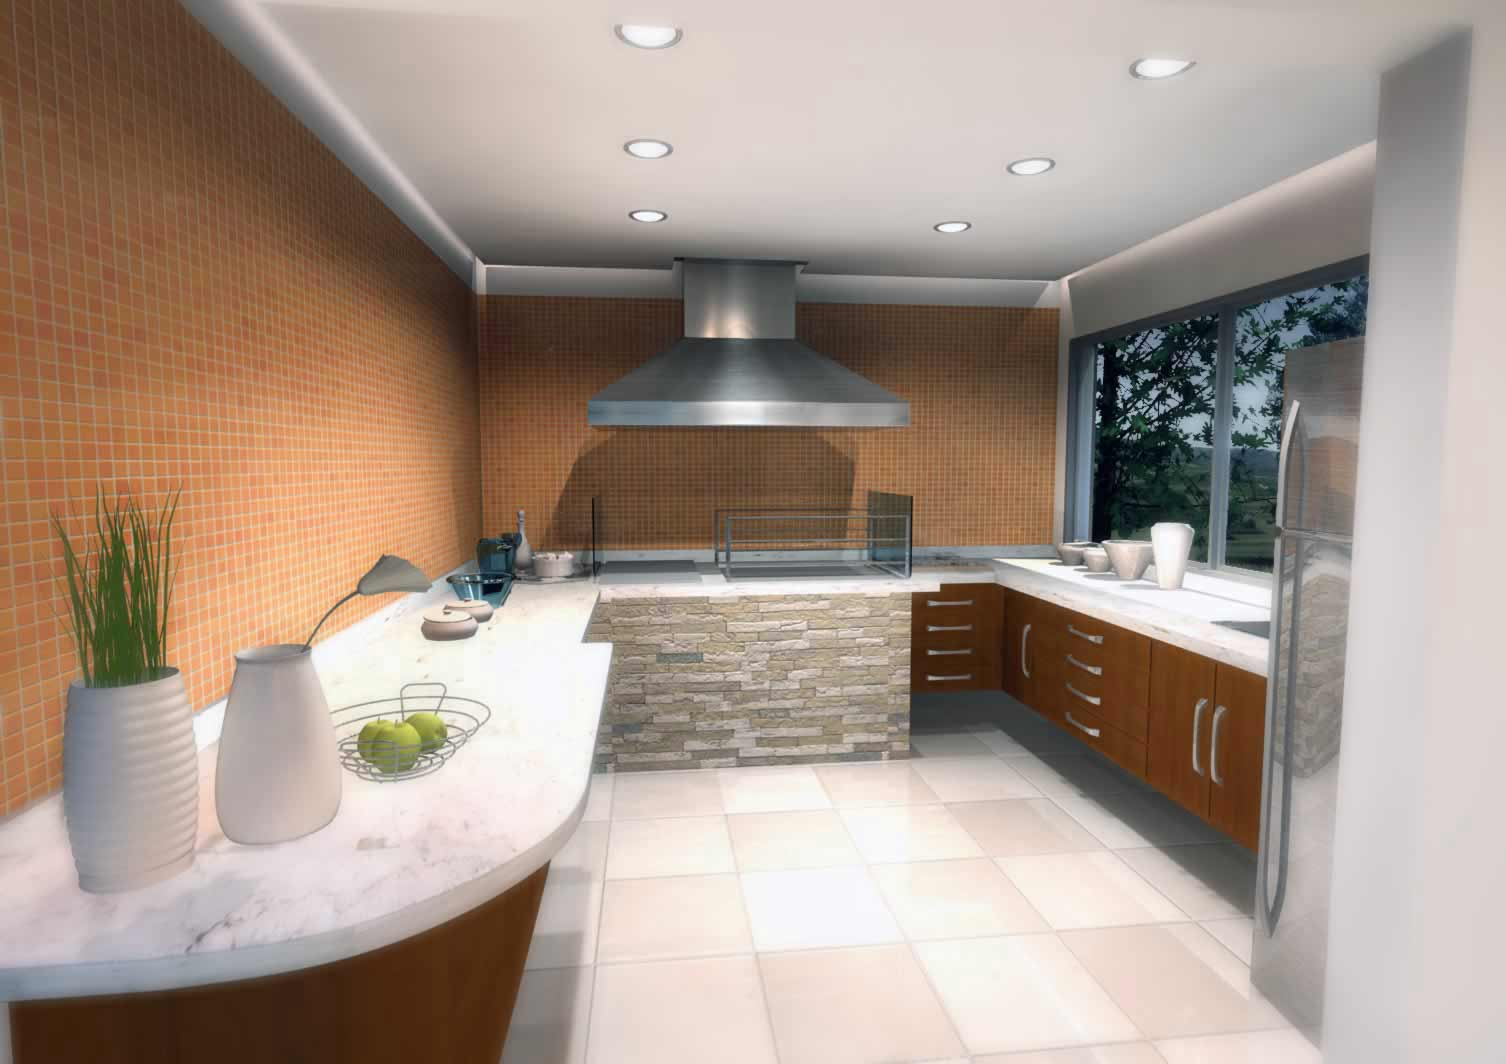 Modern white tile kitchen flooring design